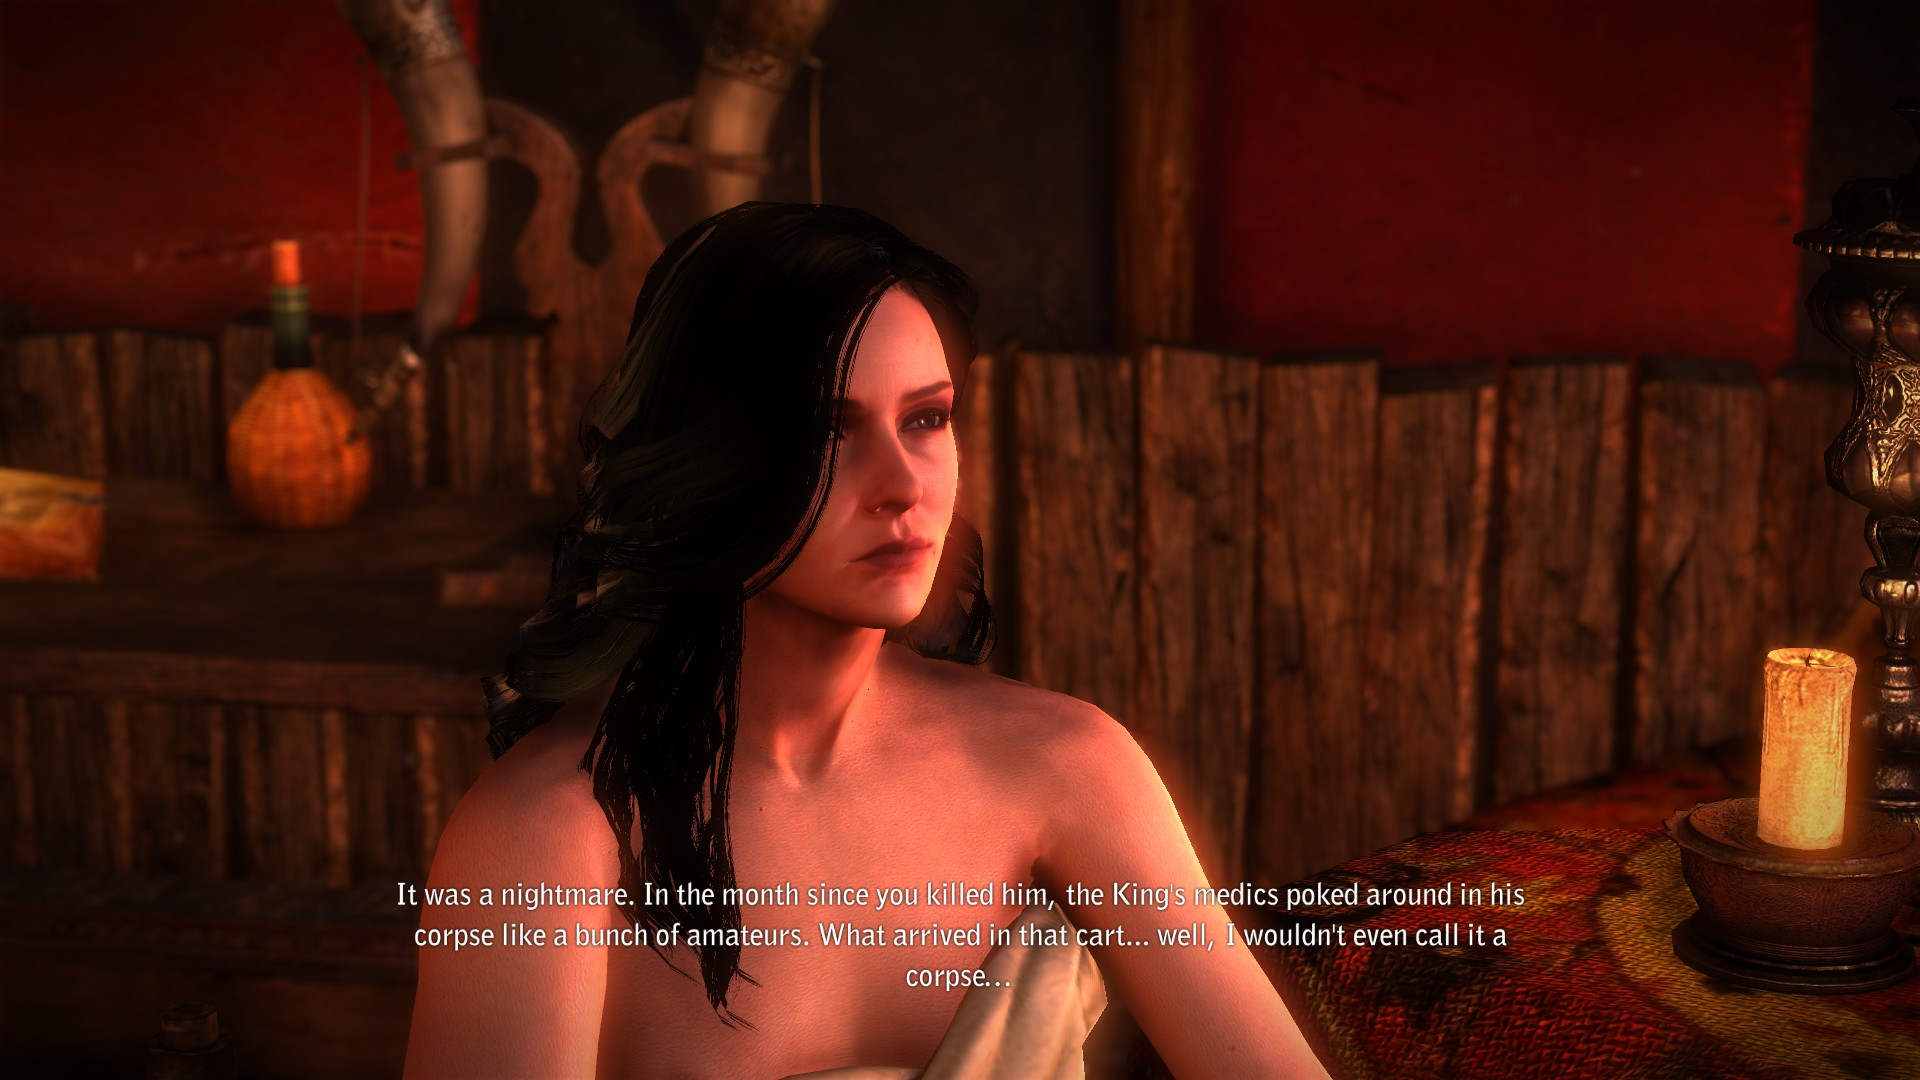 Witcher 2 nudity mod sex images